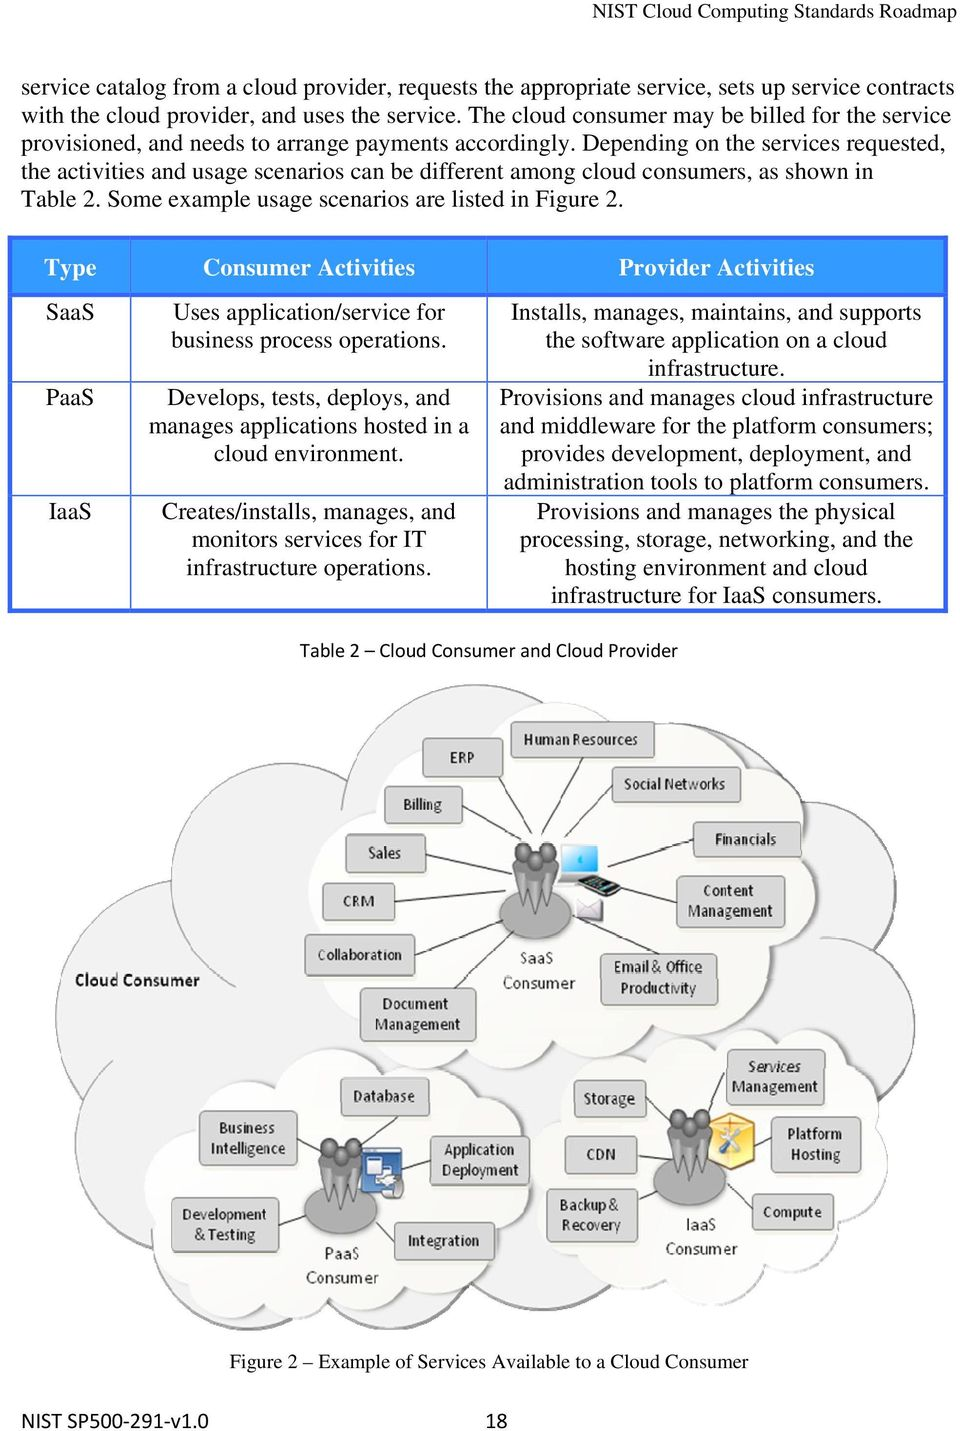 Depending on the services requested, the activities and usage scenarios can be different among cloud consumers, as shown in Table 2. Some example usage scenarios are listed in Figure 2.